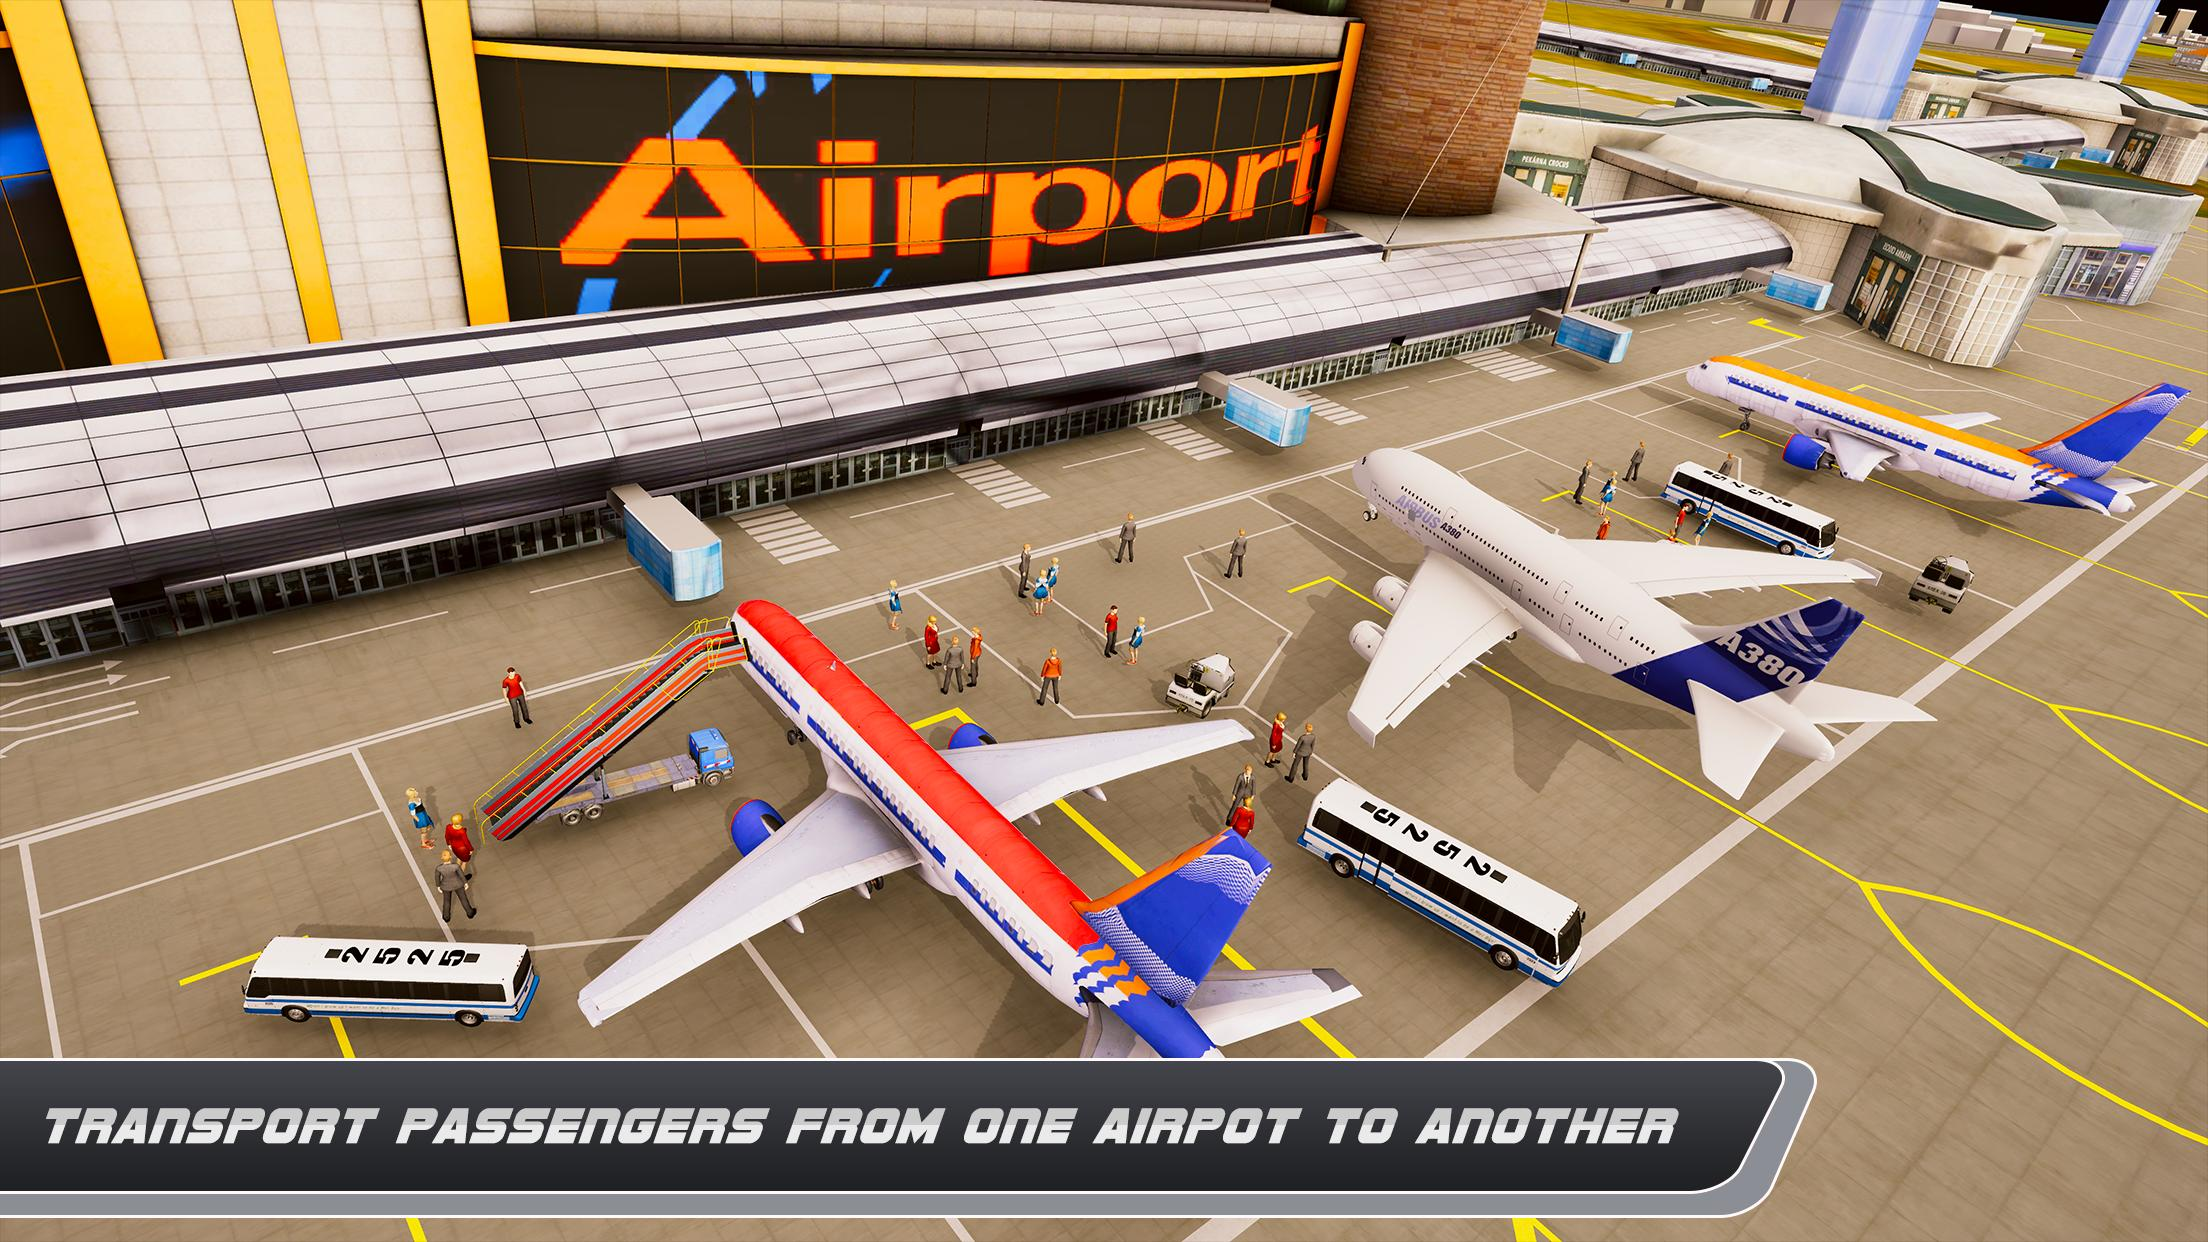 Airplane Real Flight Simulator 2020 Plane Games 5.4 Screenshot 2